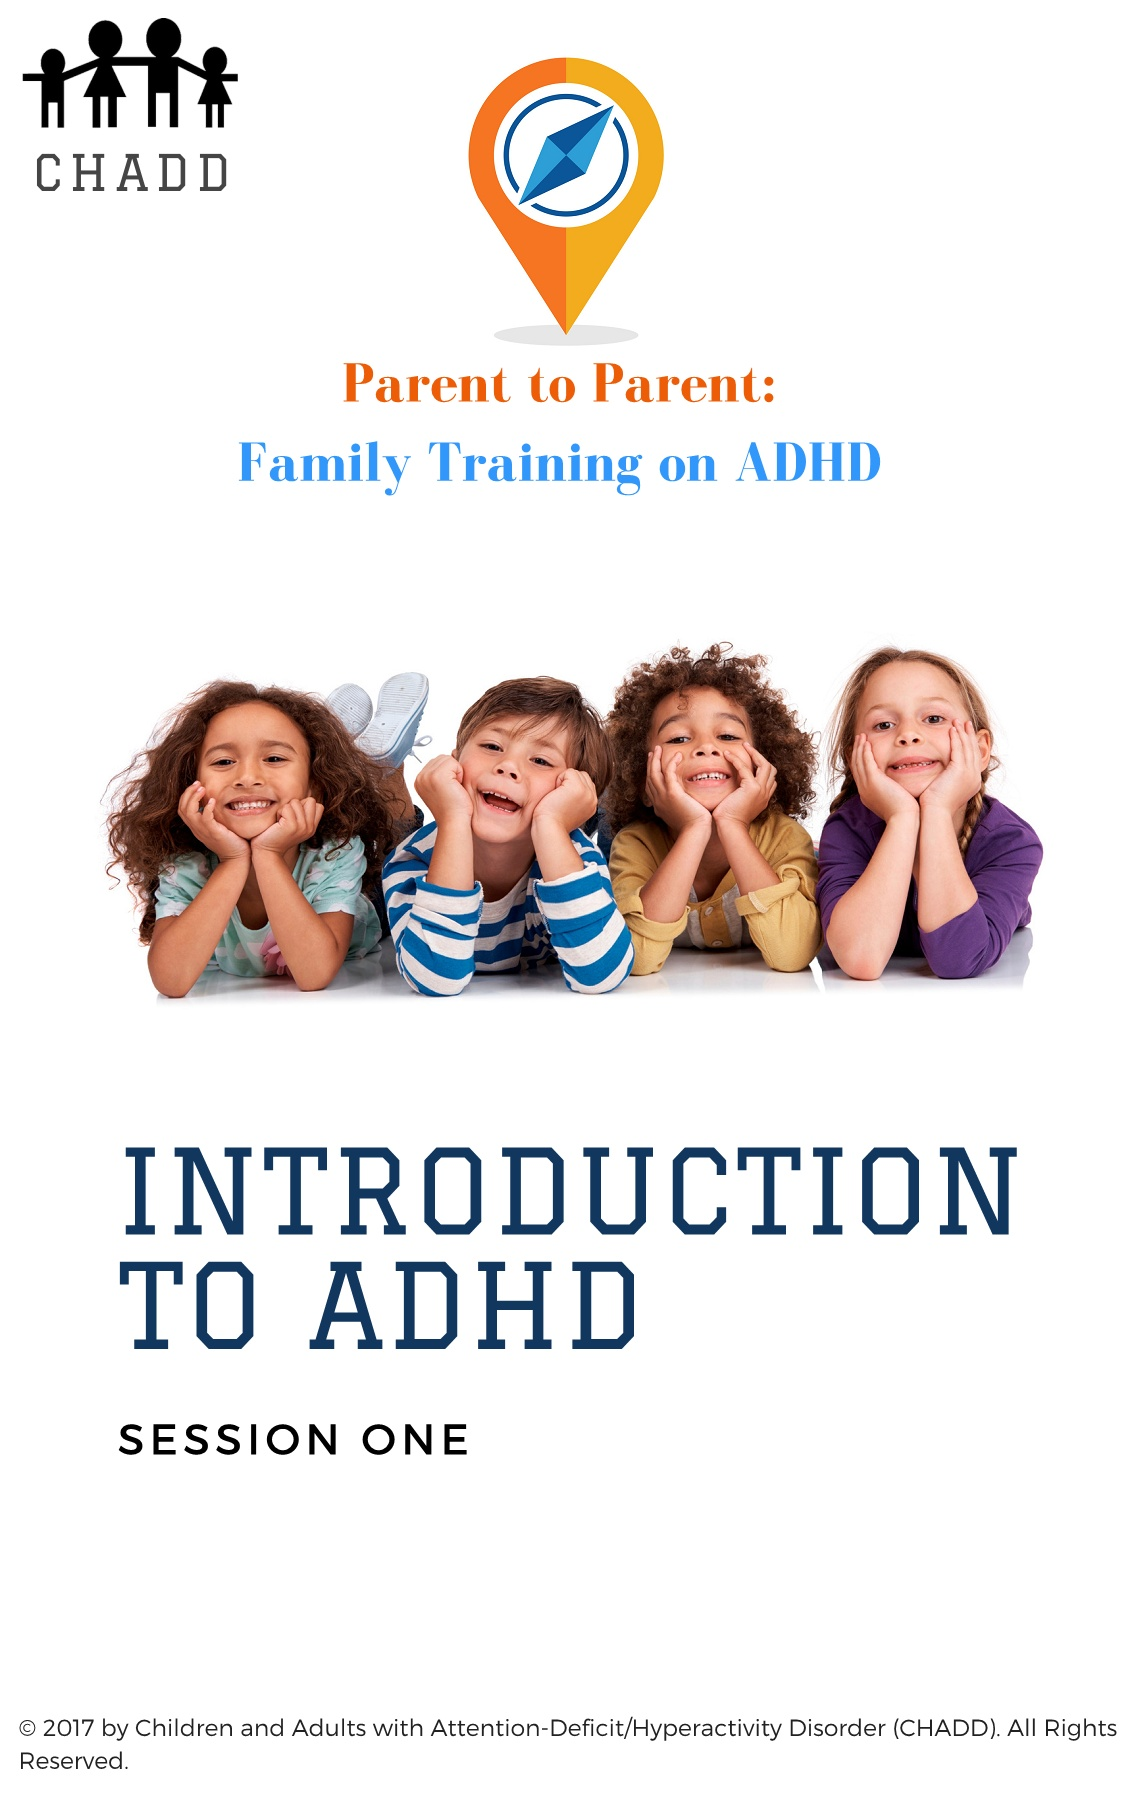 Introduction to ADHD Resources